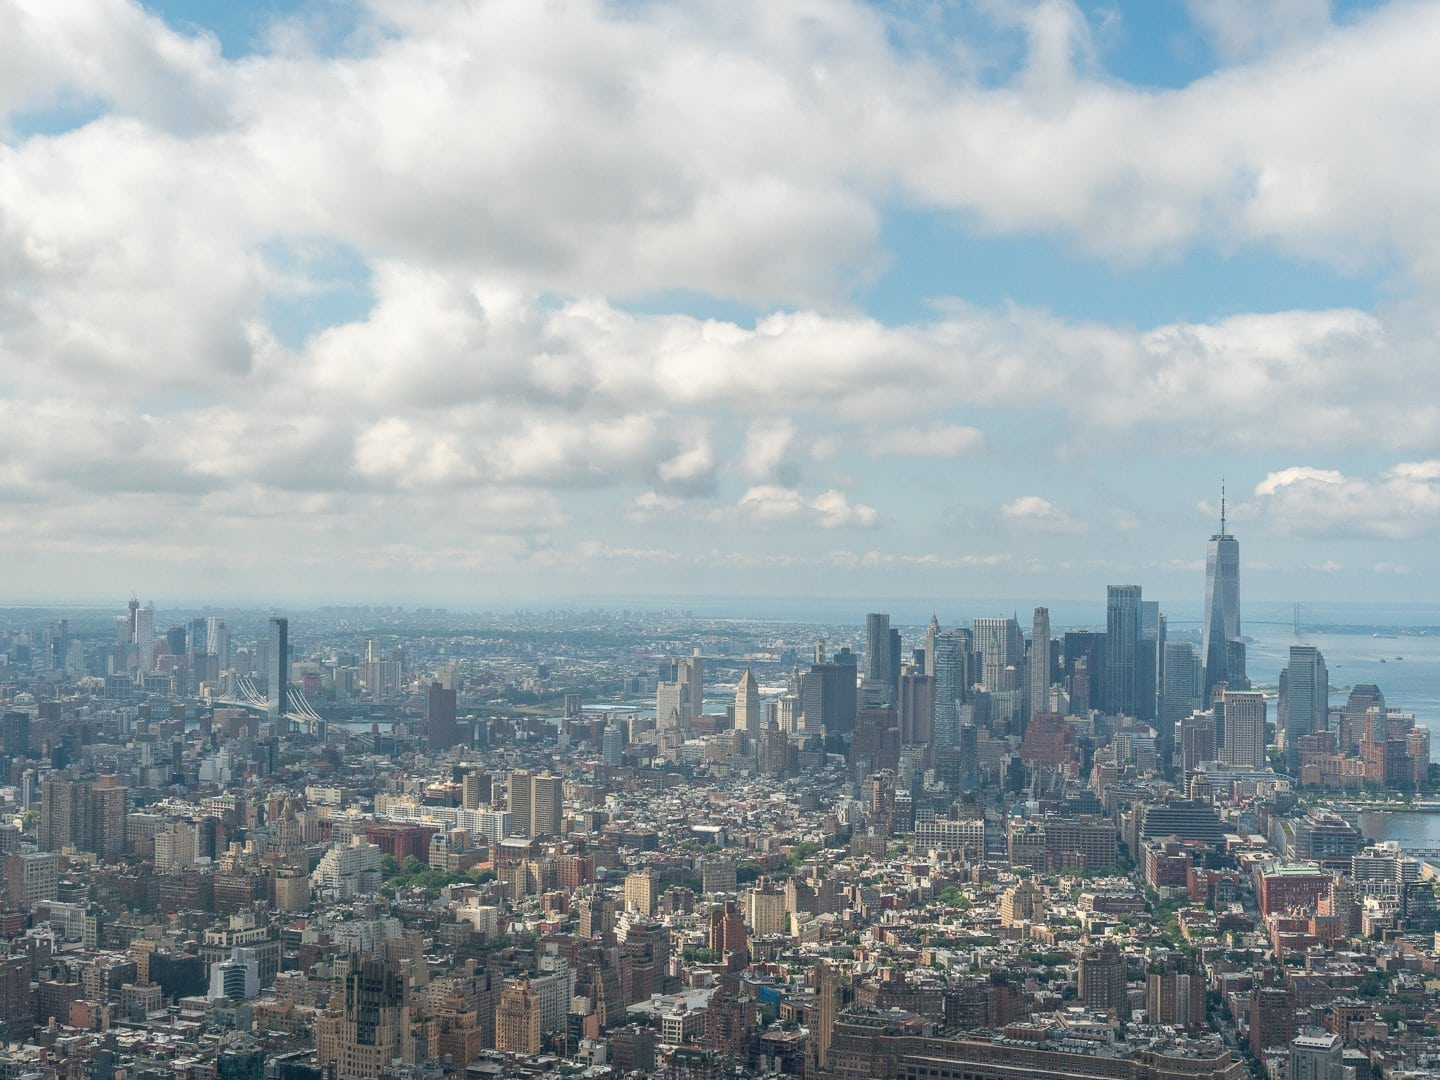 View of Manhattan from The Edge in Hudson Yards